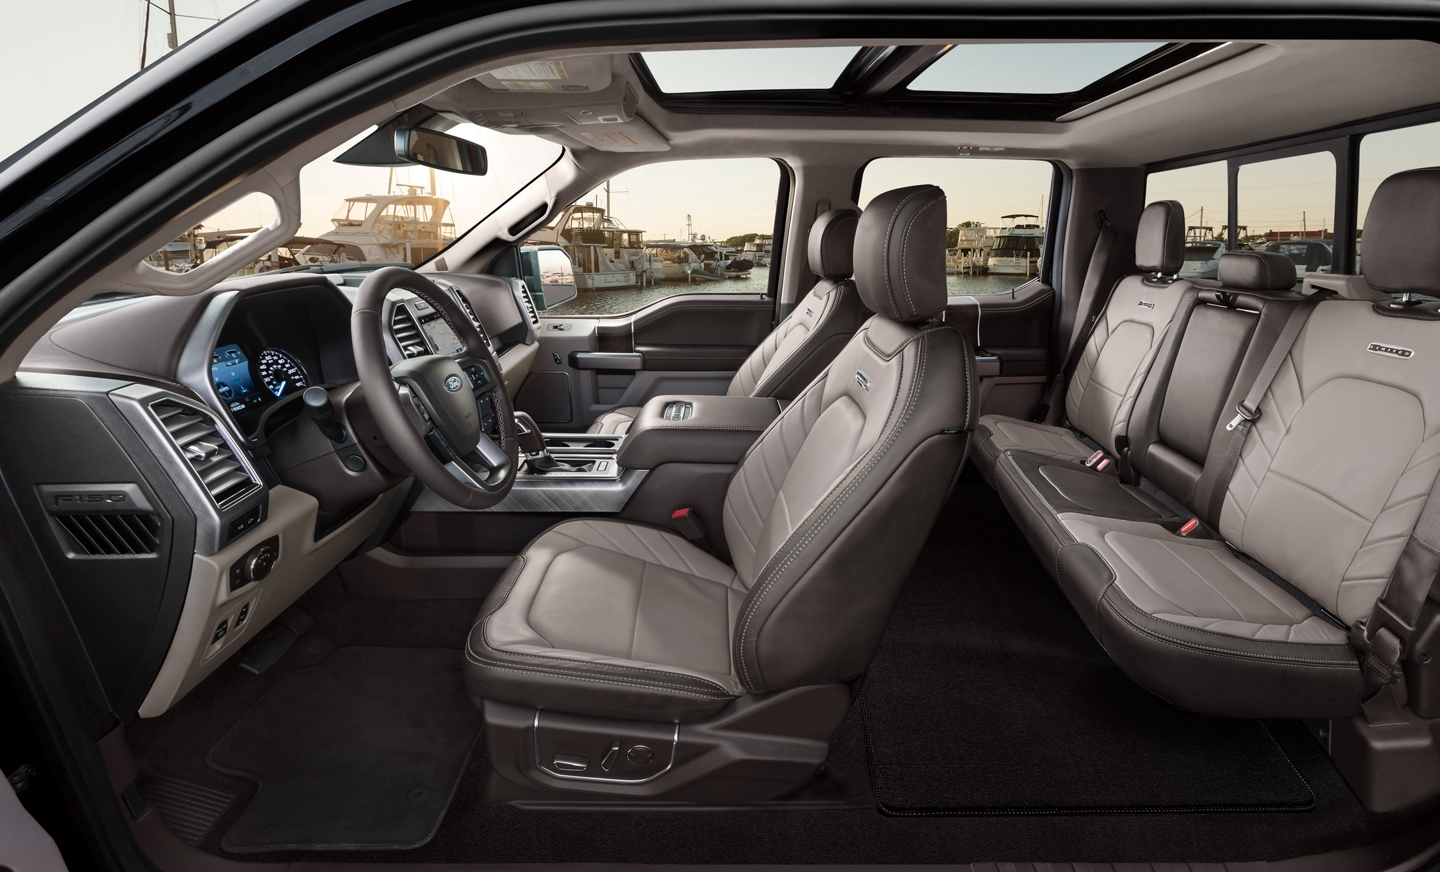 Interior of the 2020 Ford F-150